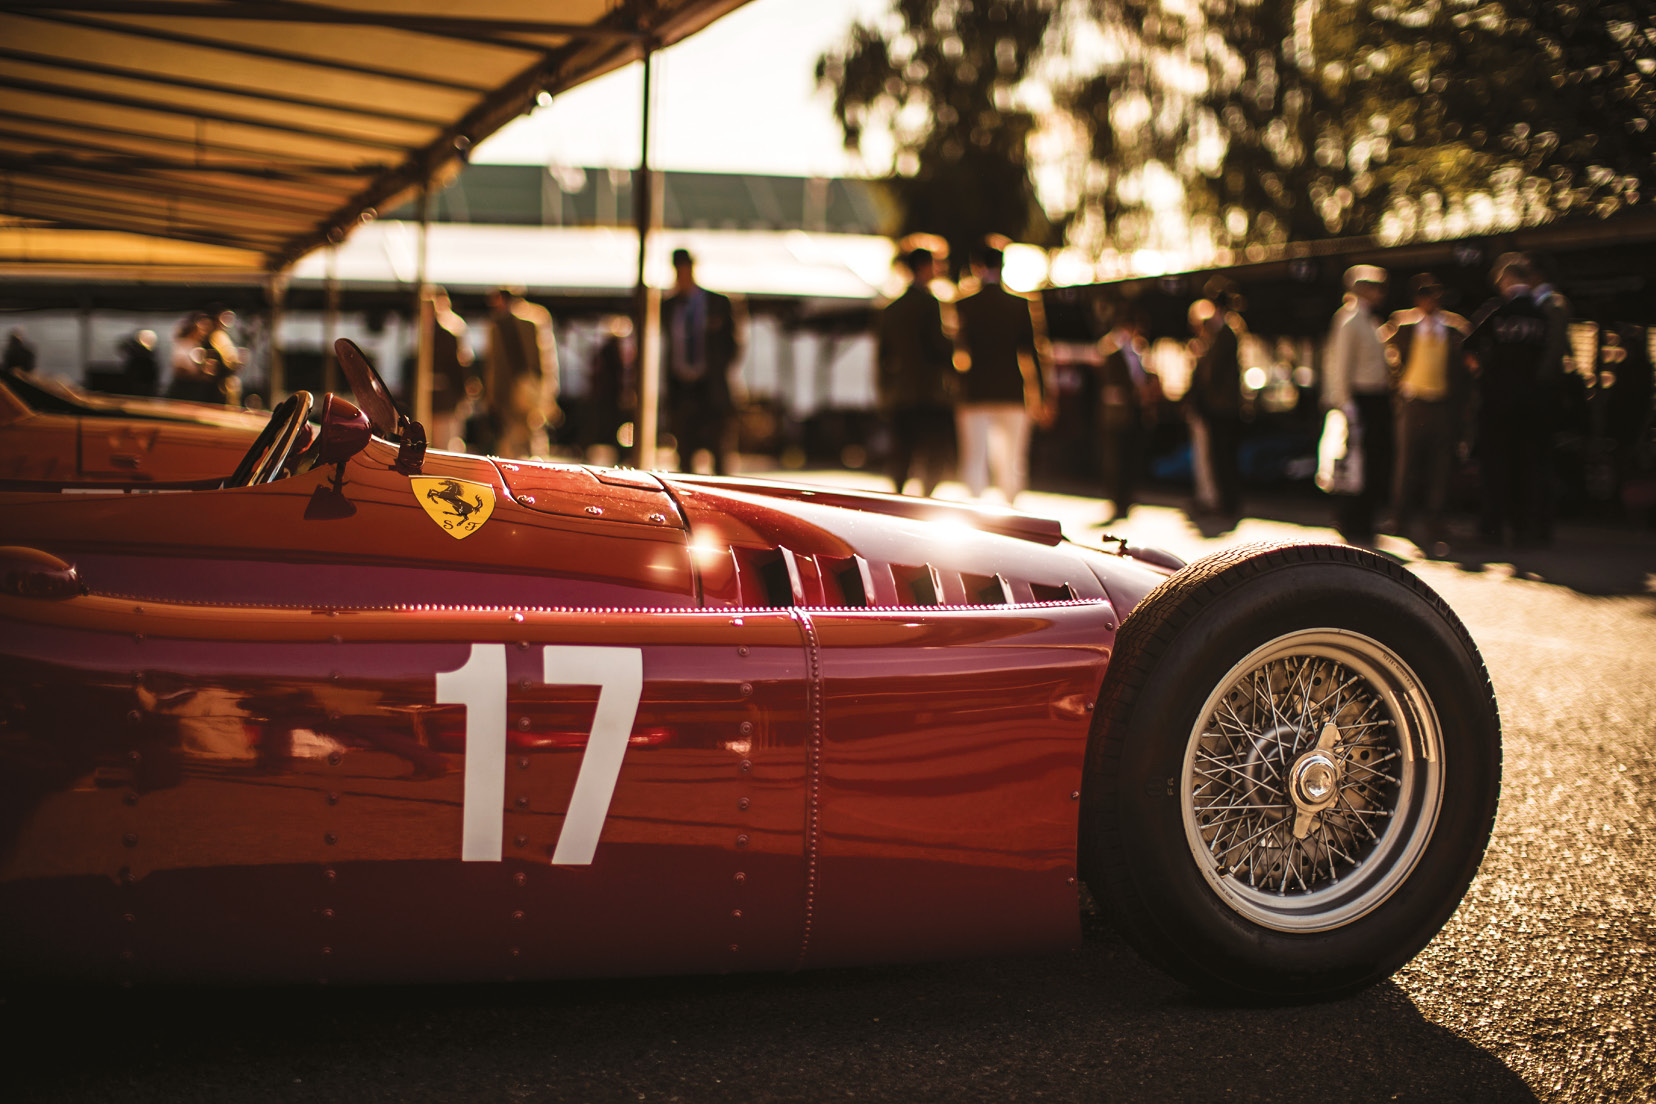 Travel back in time at Goodwood circuit for a unique racing experience